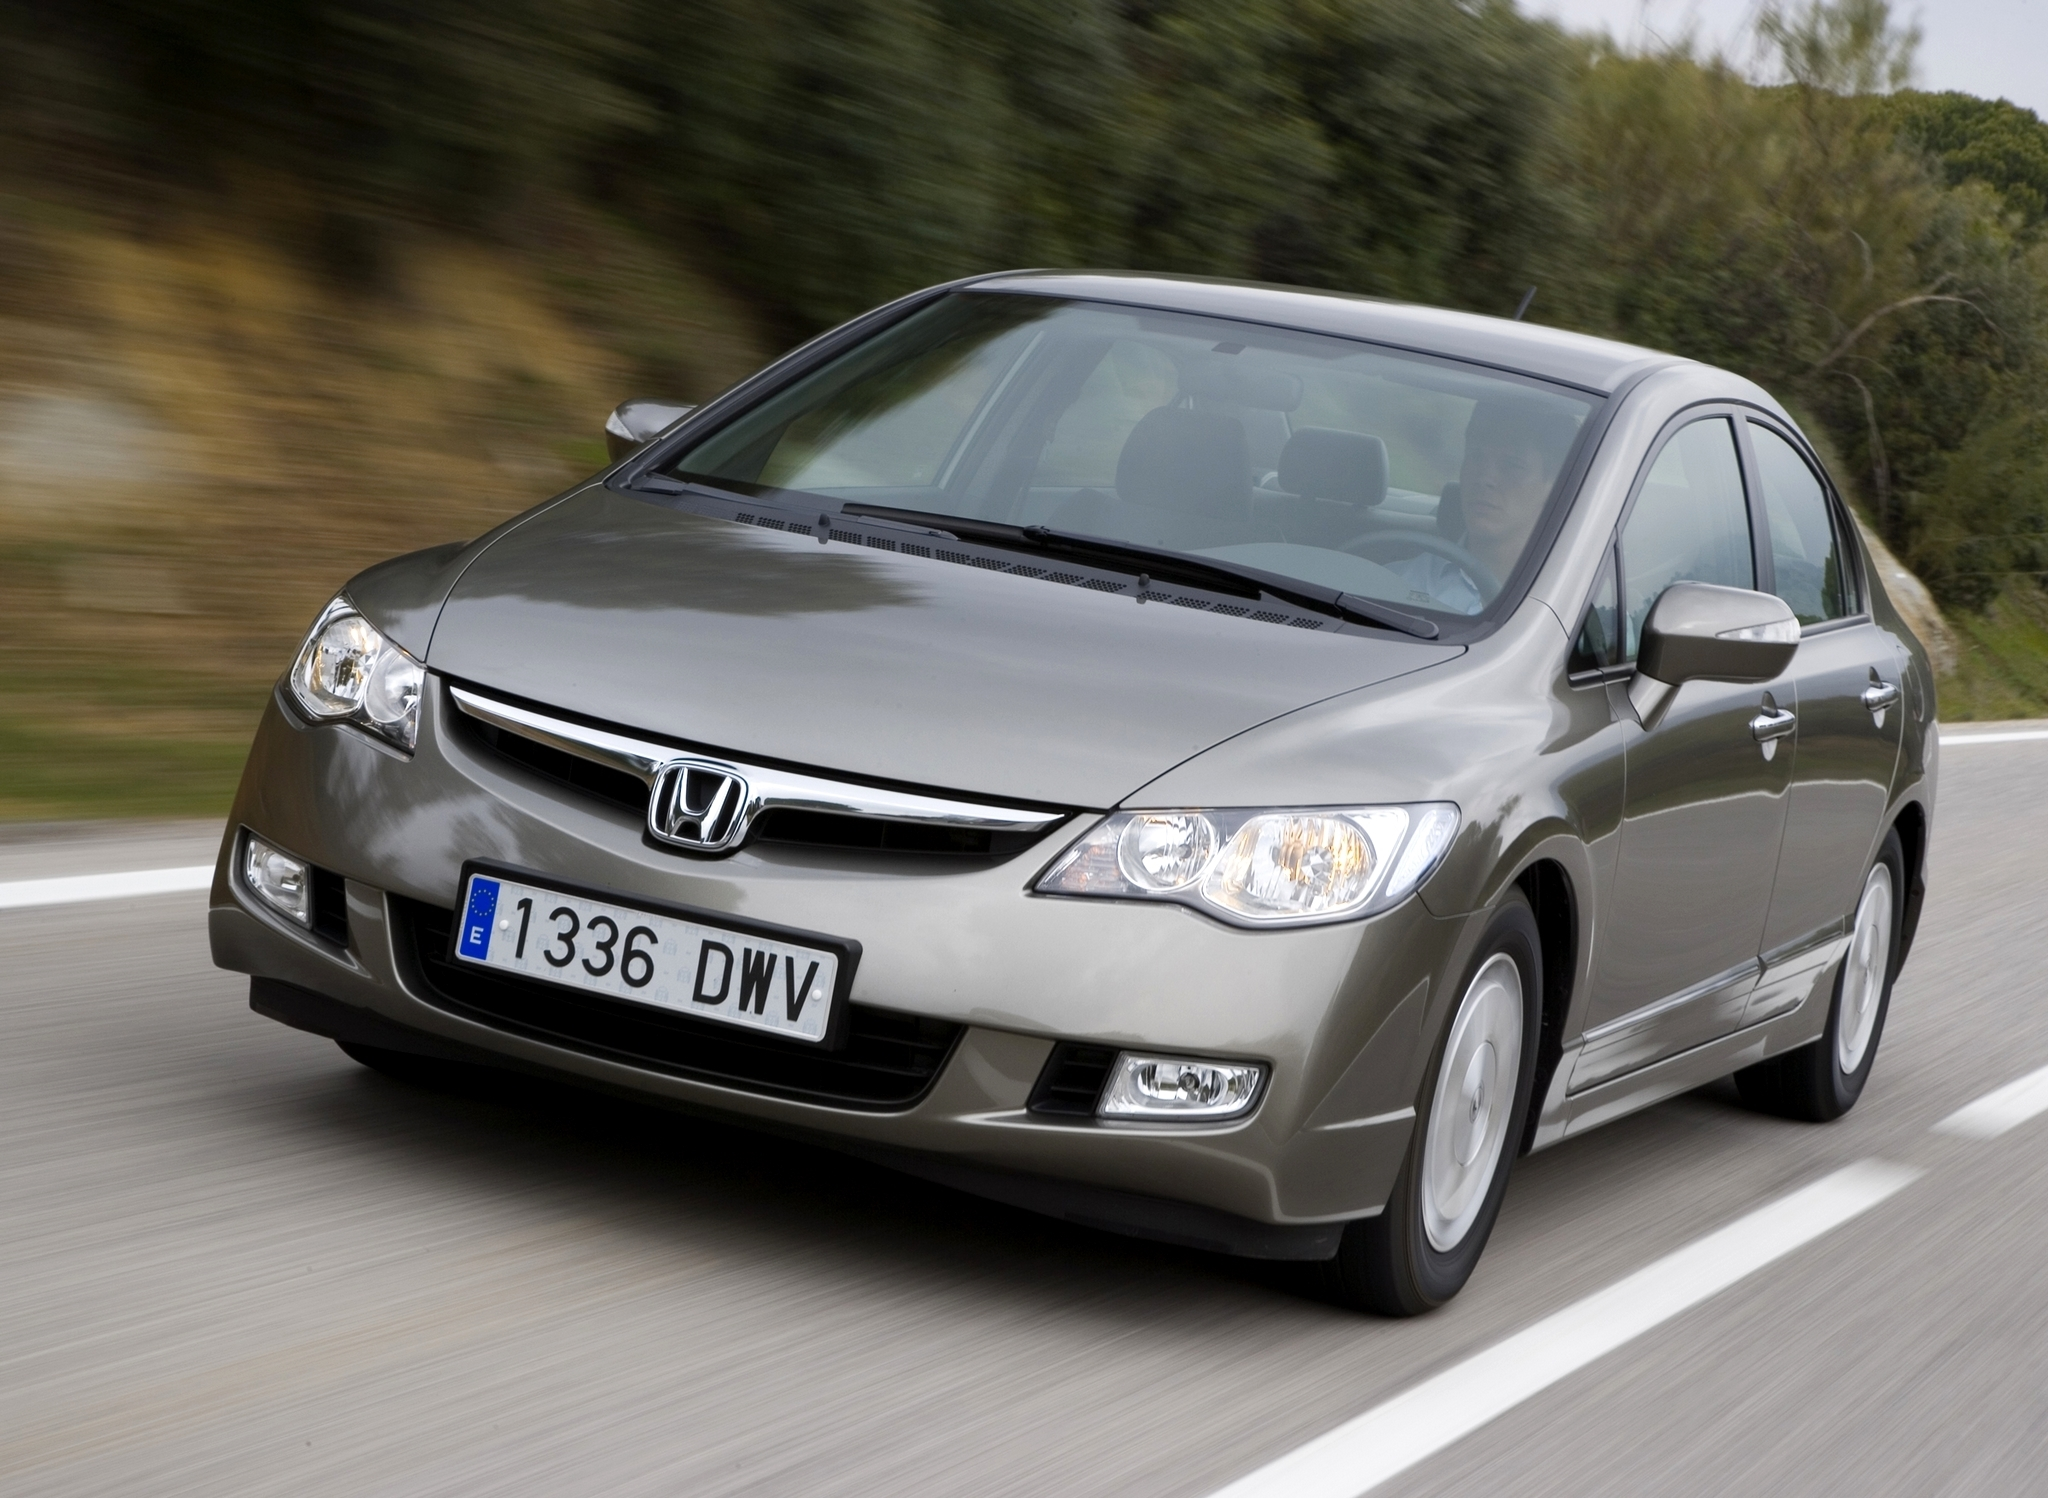 Honda city used car price in pakistan